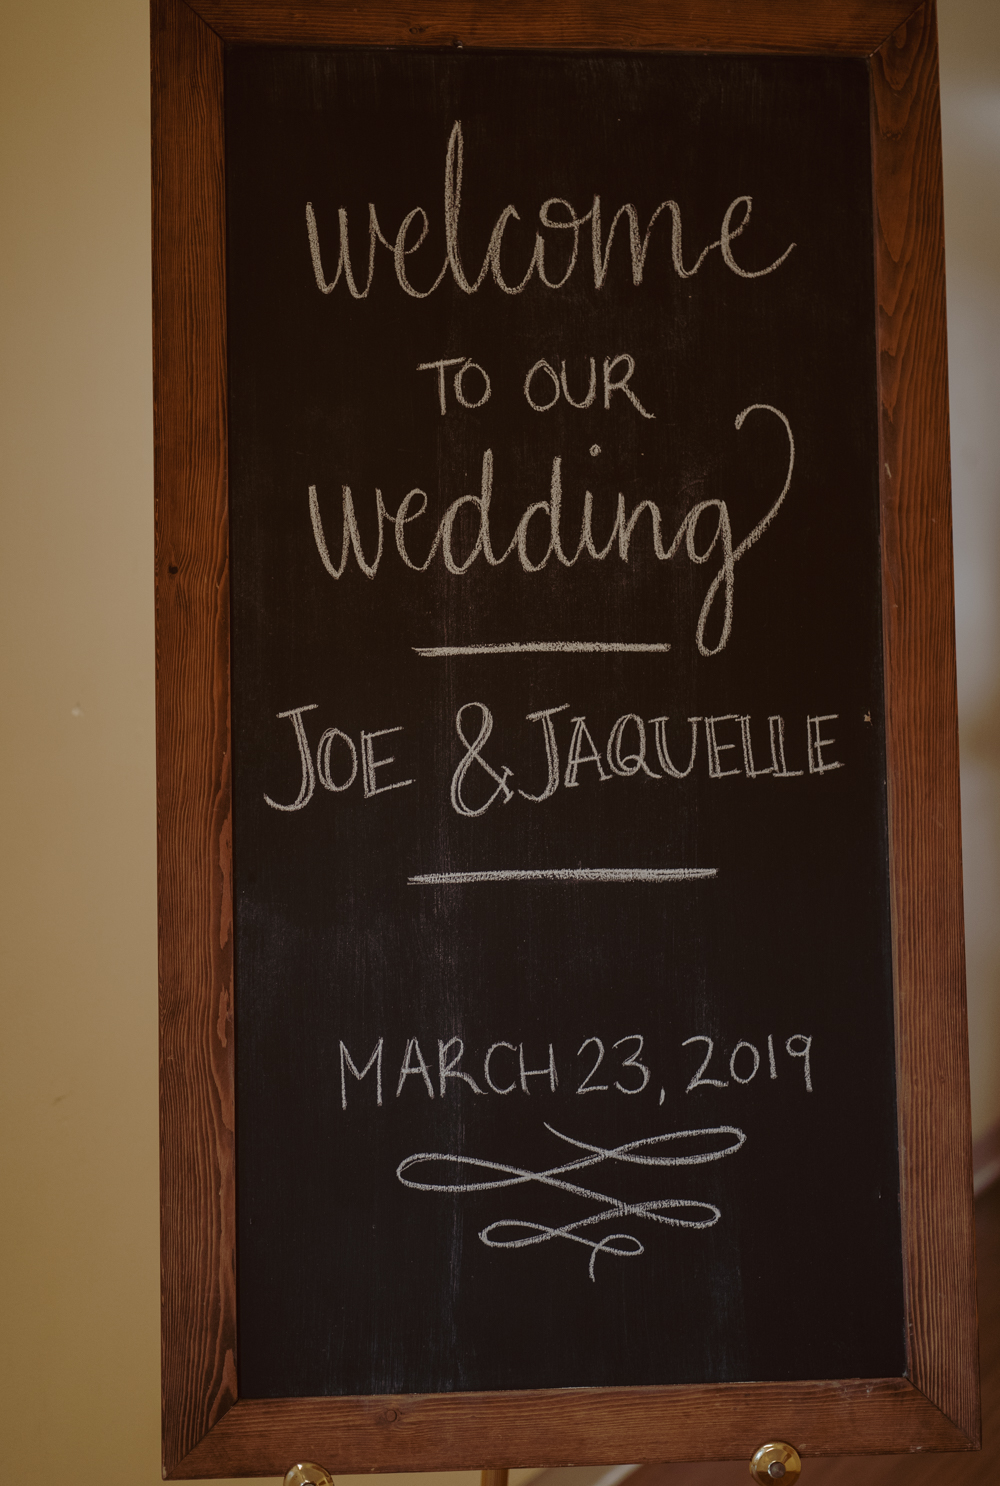 Our venue had a sweet girl who does chalkboard art decorate this welcome board when people entered the lodge.